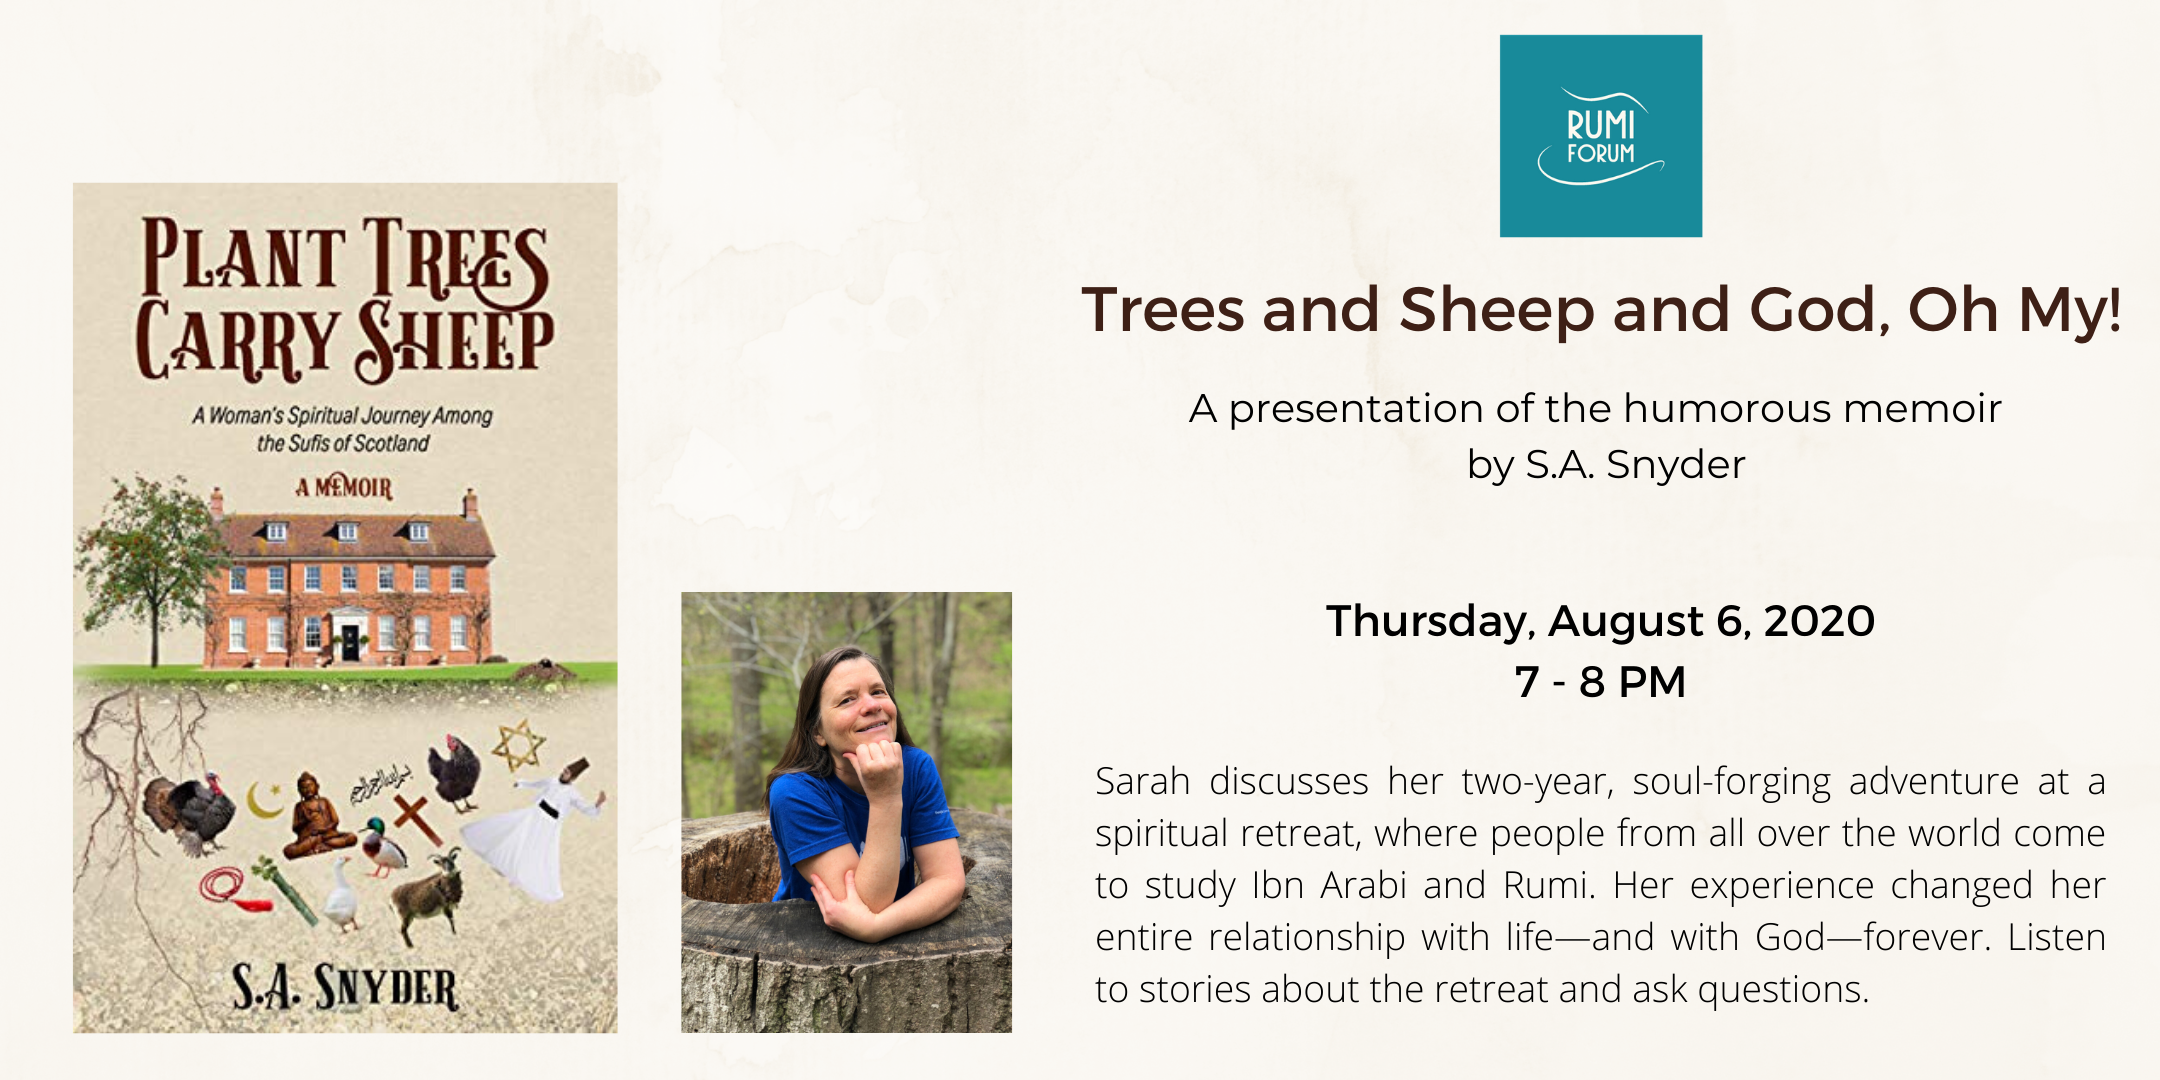 Trees and Sheep and God, Oh My!